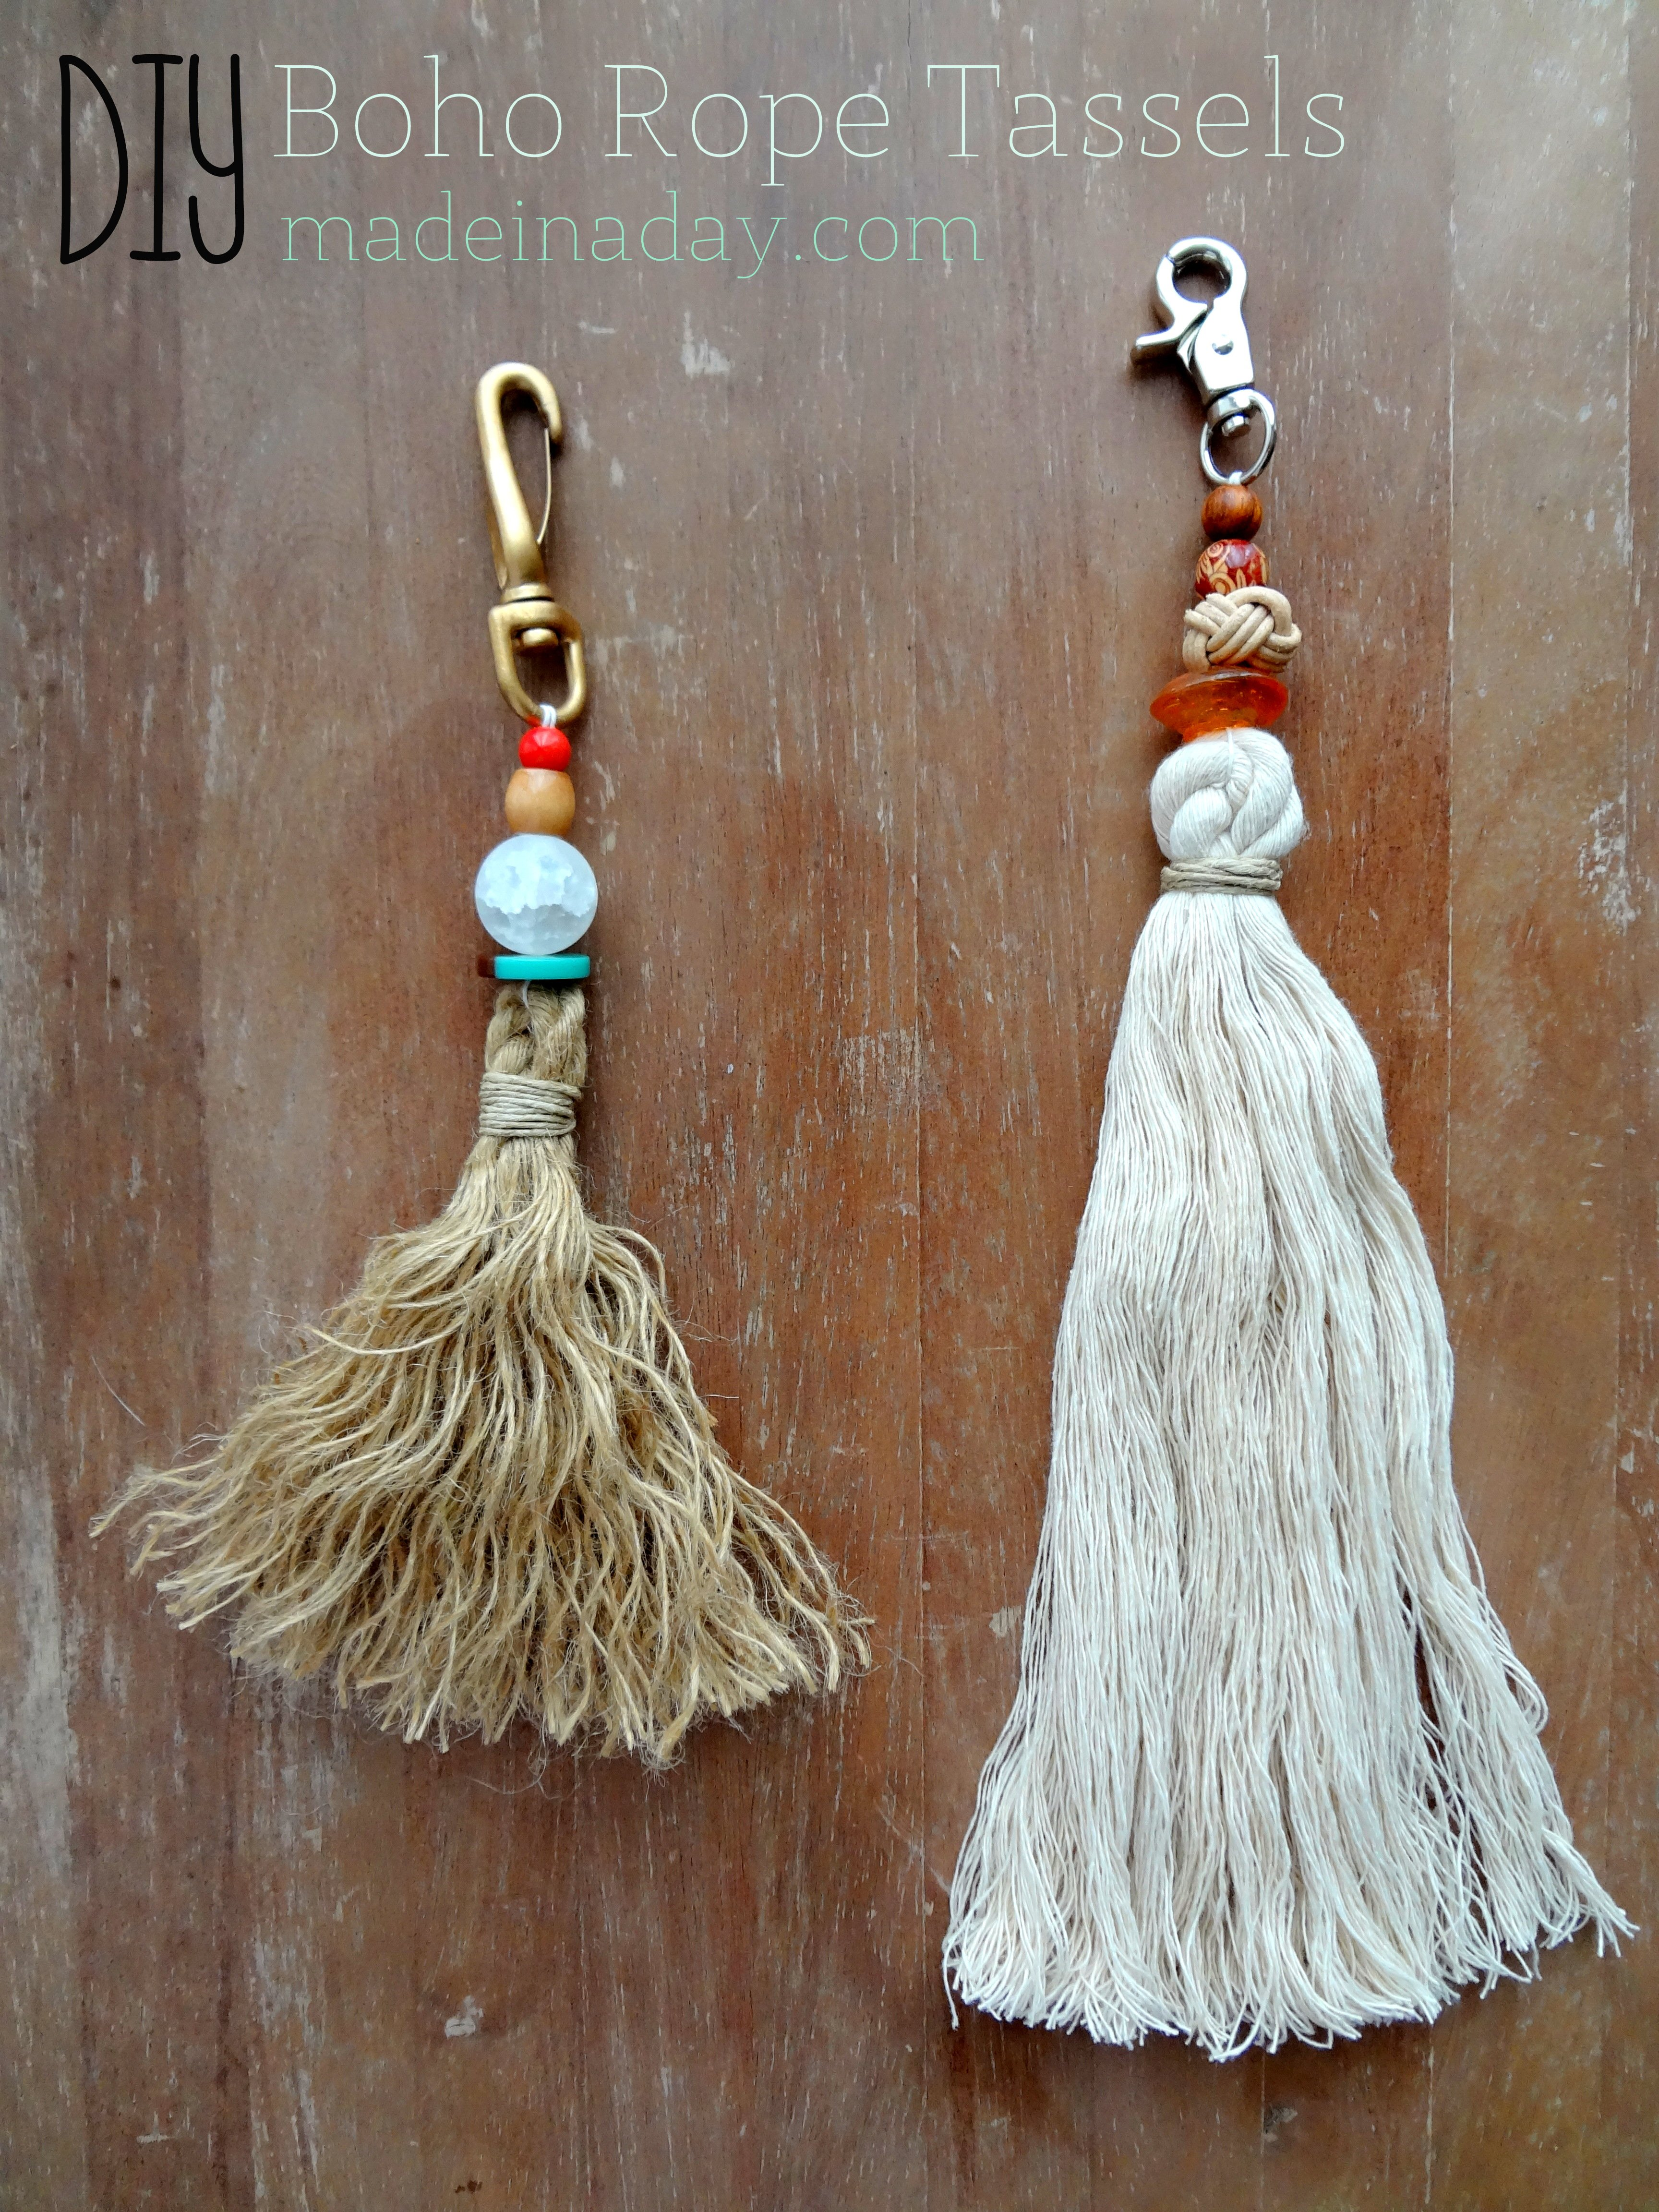 Bohemian Rope Tassels Made In A Day